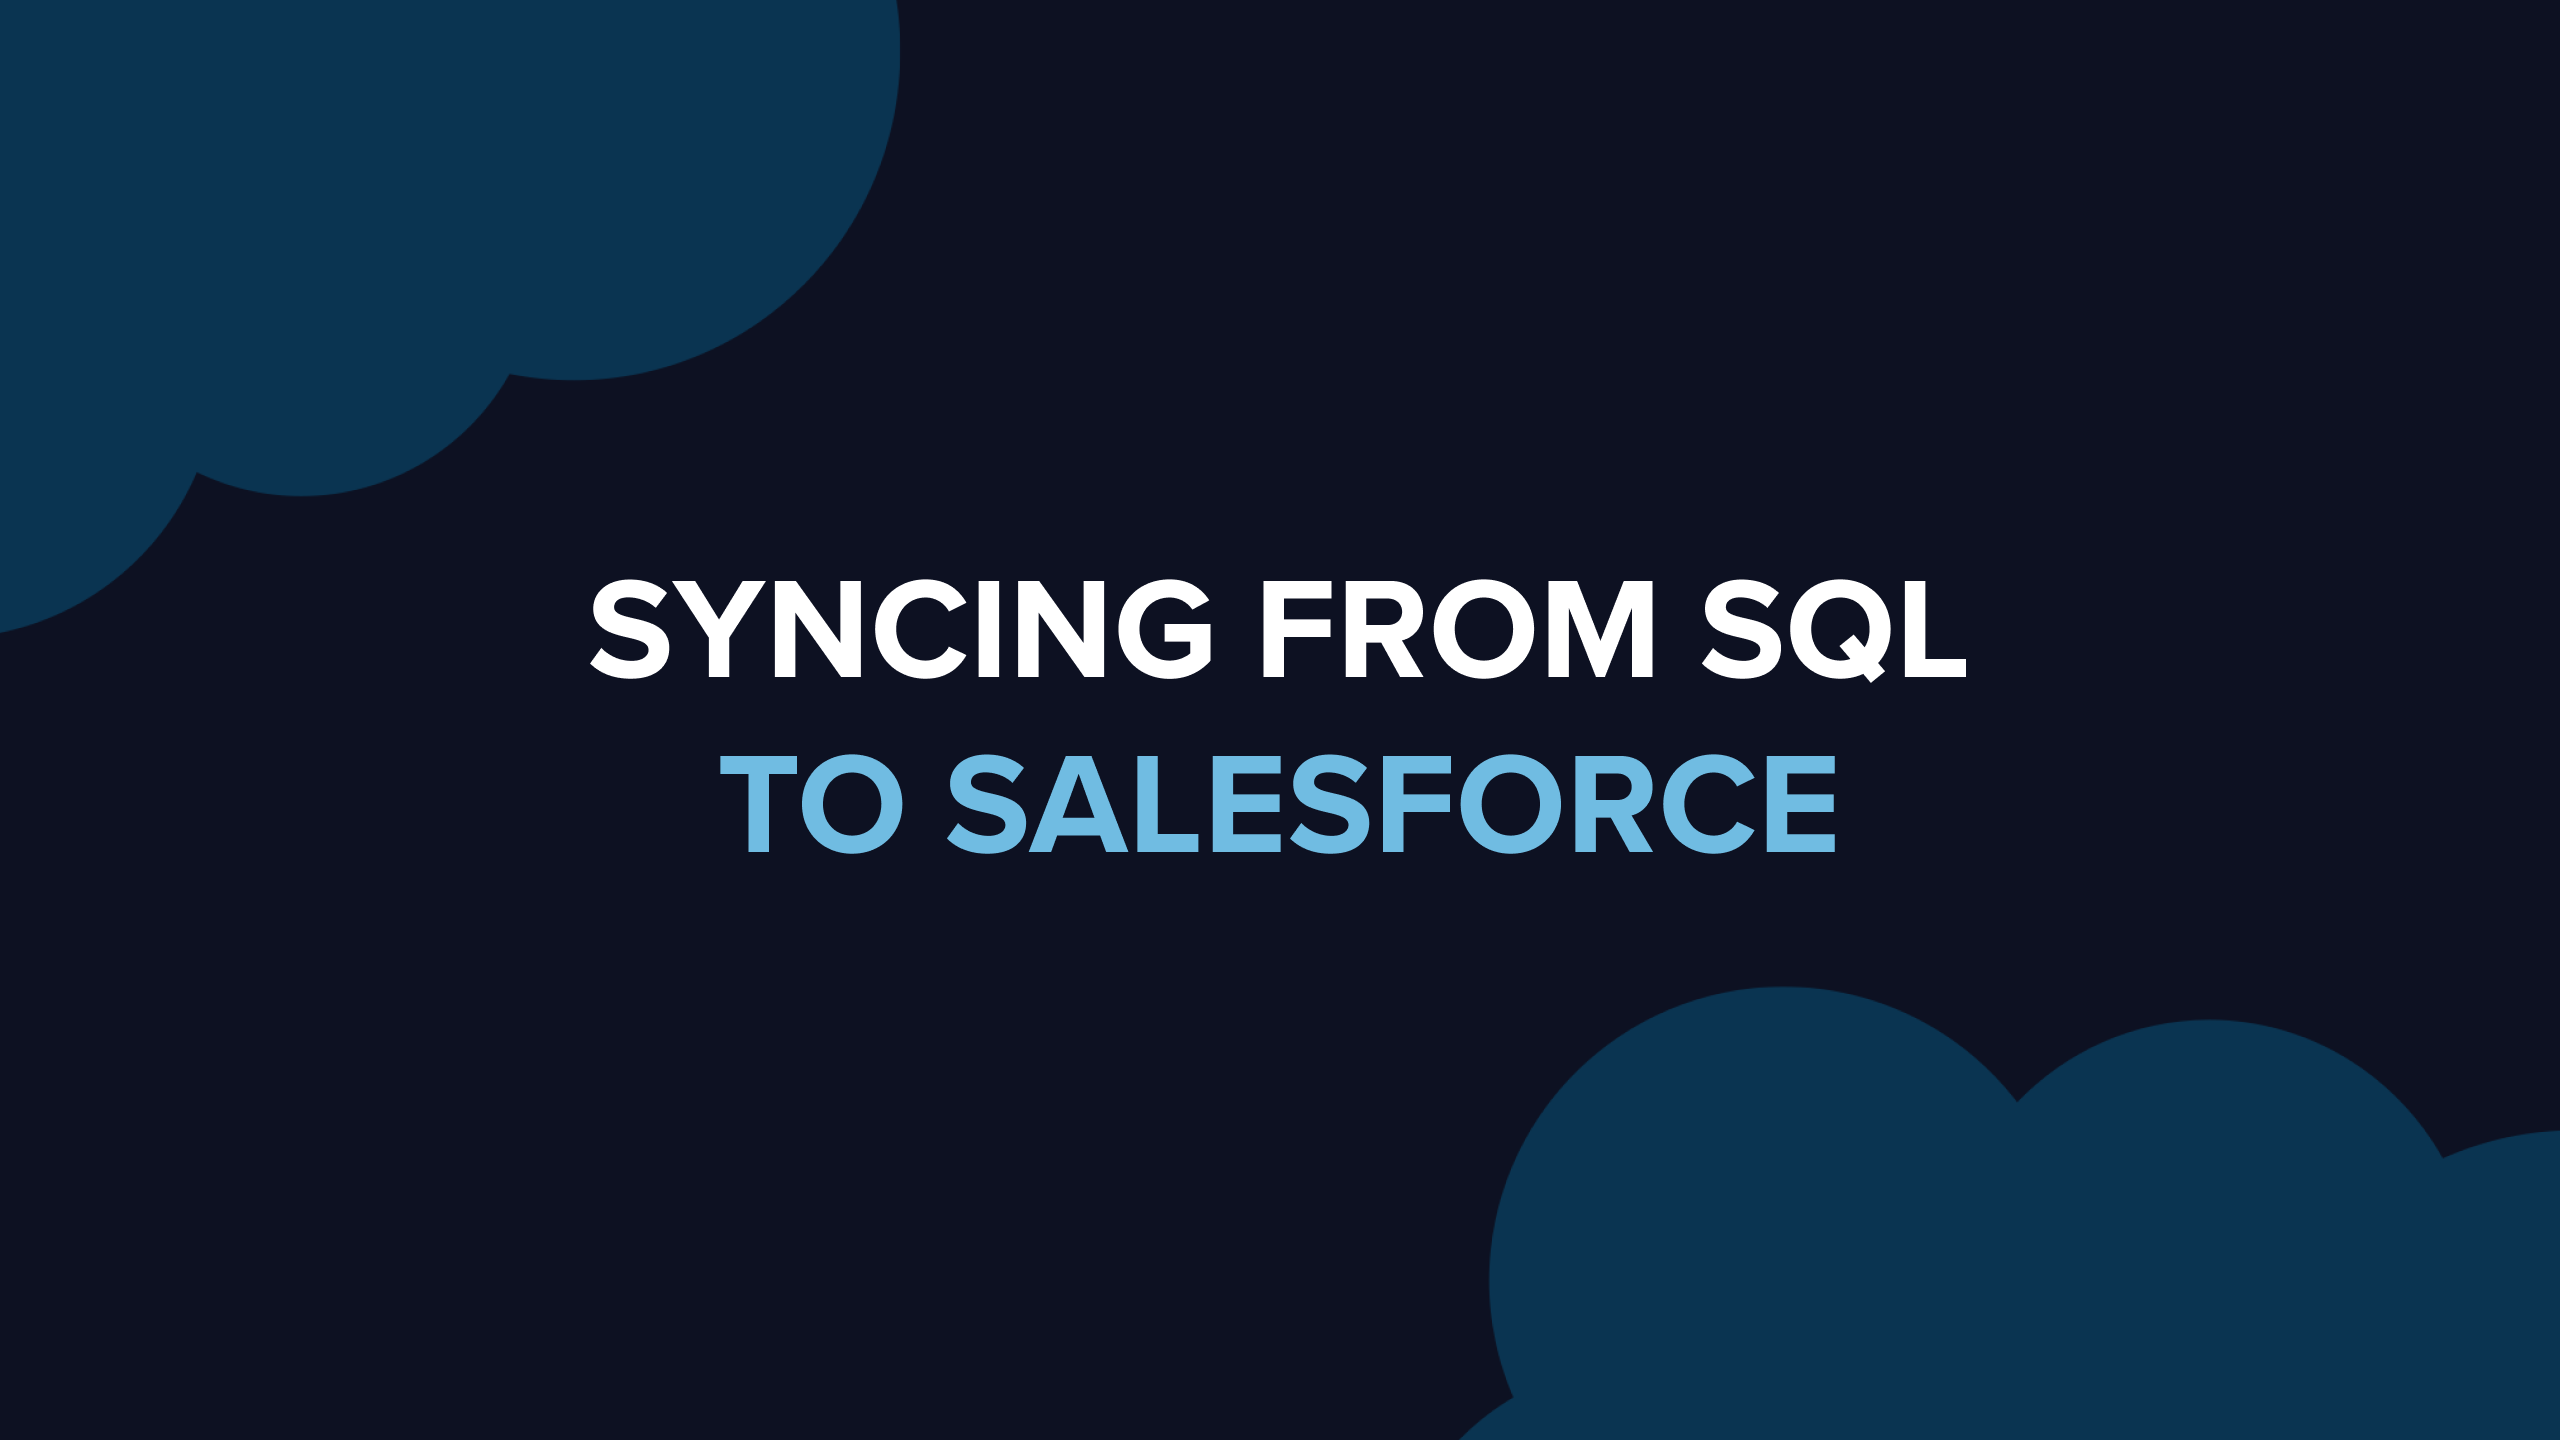 Sync warehouse data to Salesforce without writing scripts